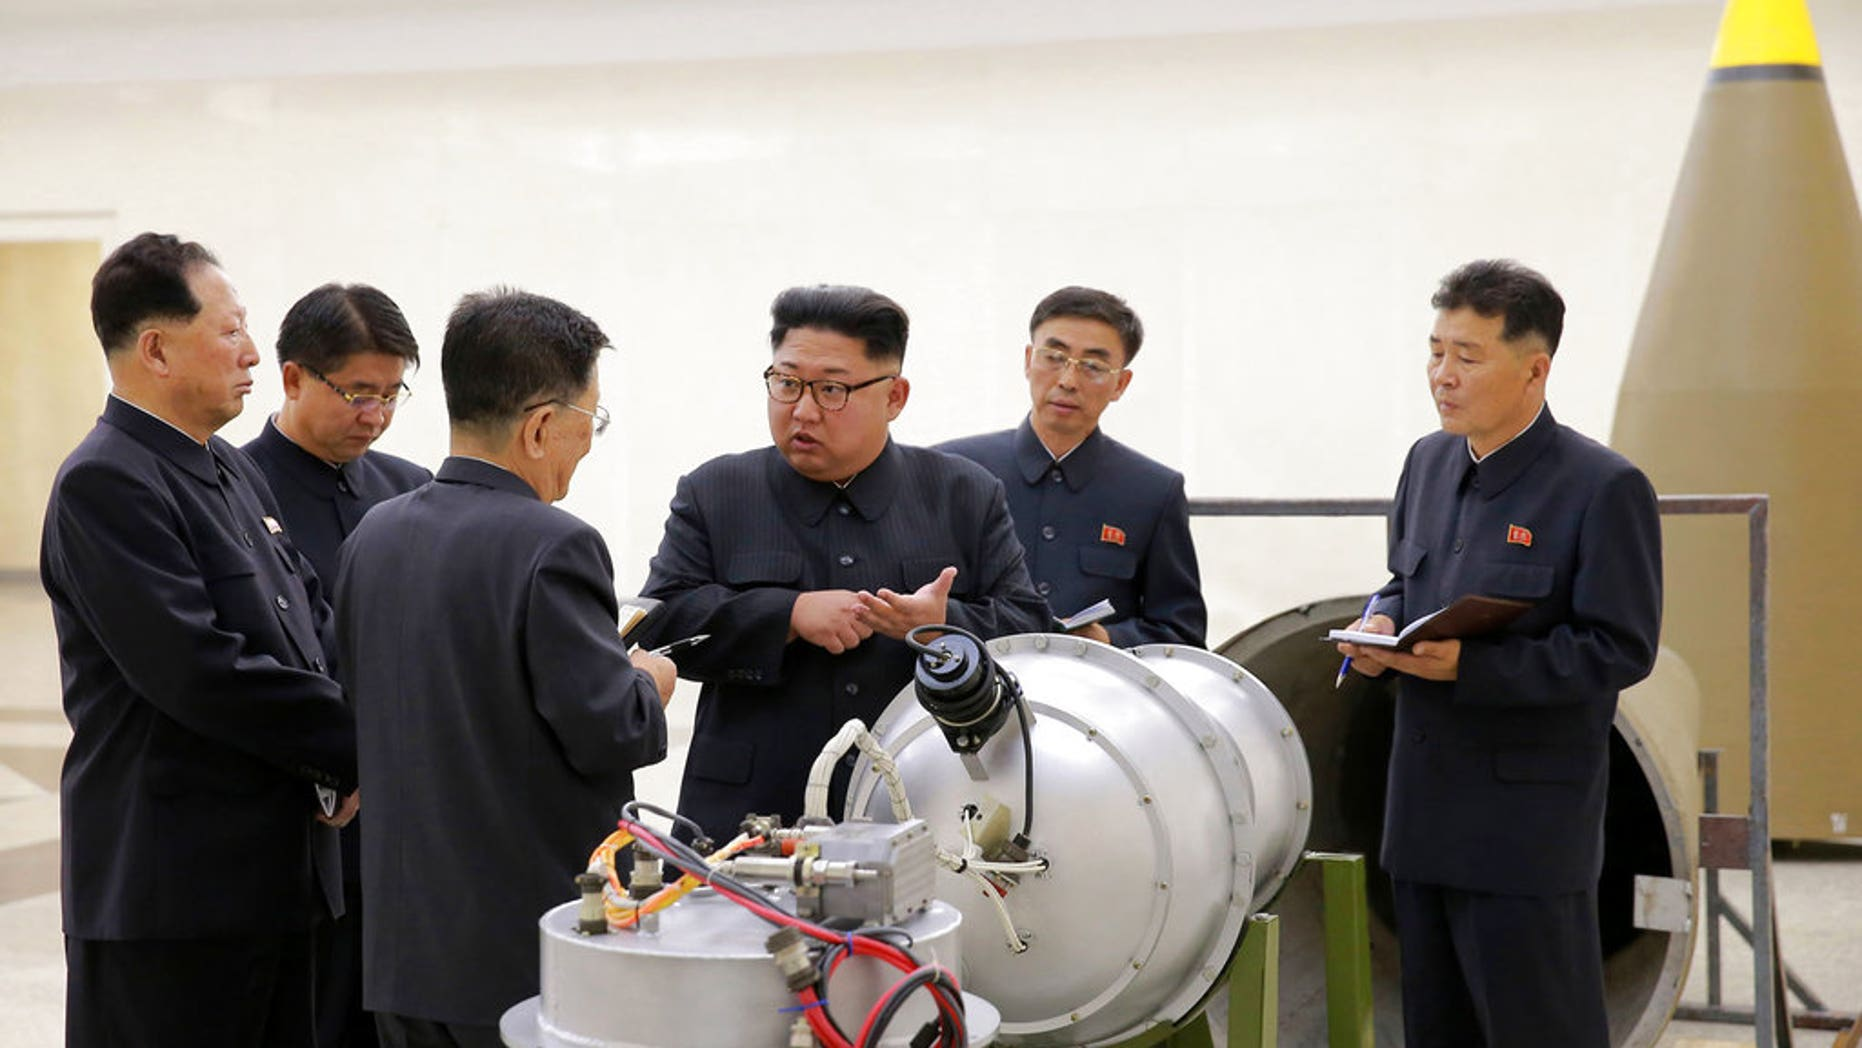 If North Korea fires a missile at the U.S., there may not be much time to react, officials tell Fox News.